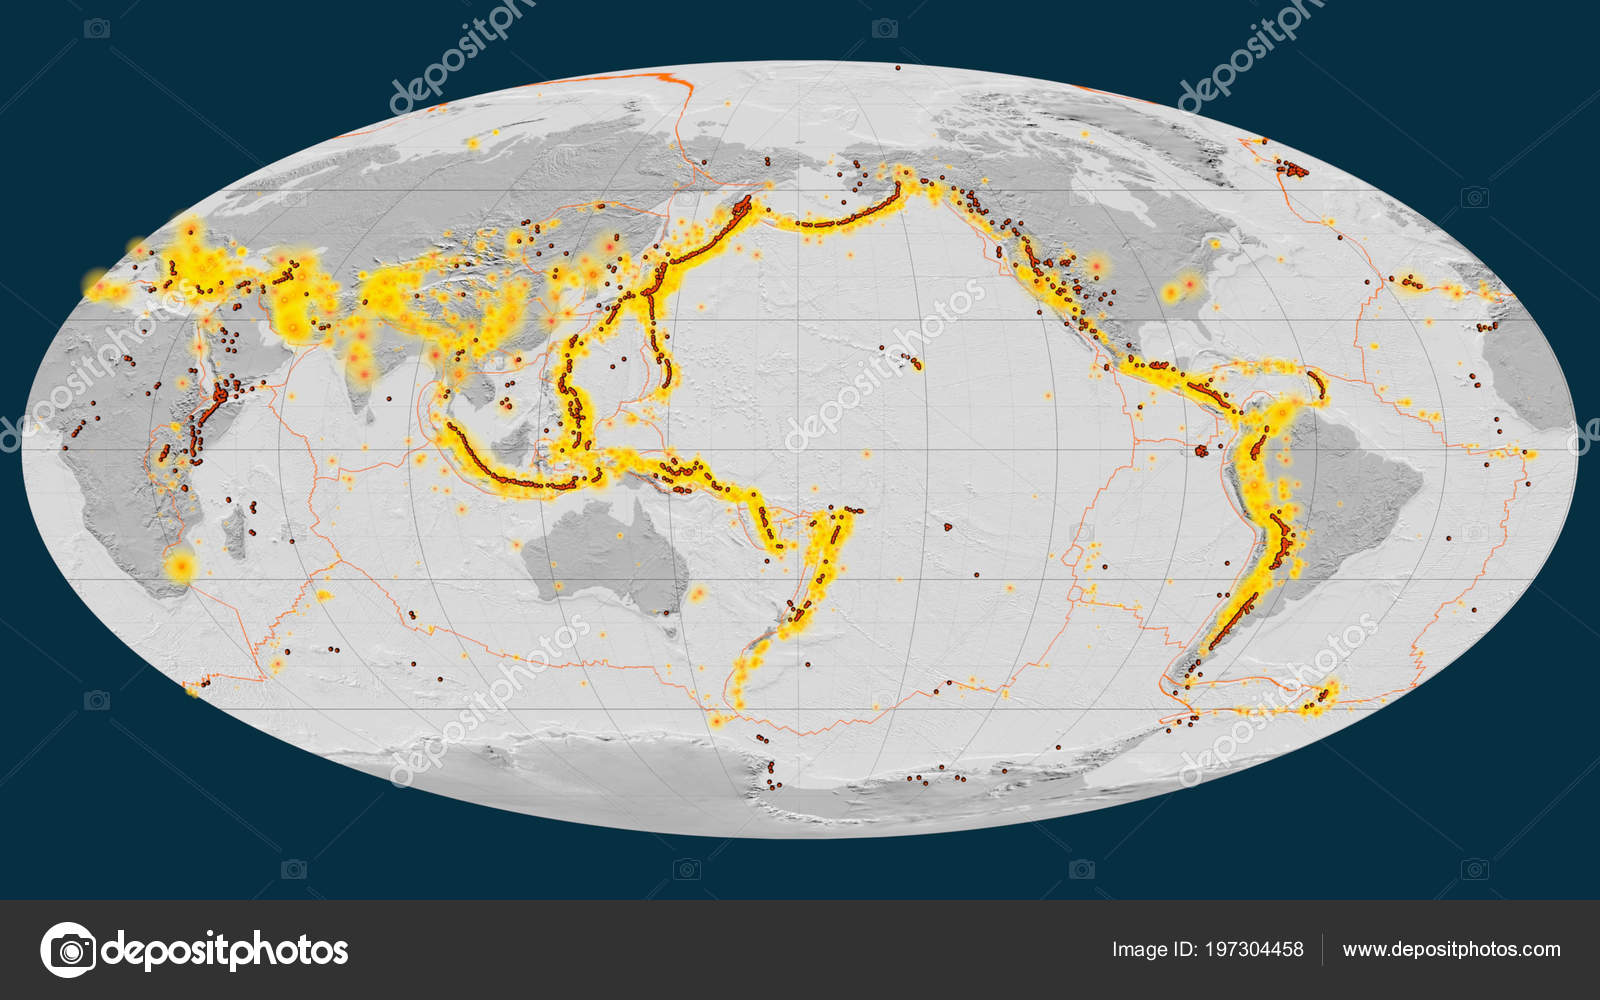 Earthquakes Volcanoes Distribution Pacific Ring Fire Global Bilevel